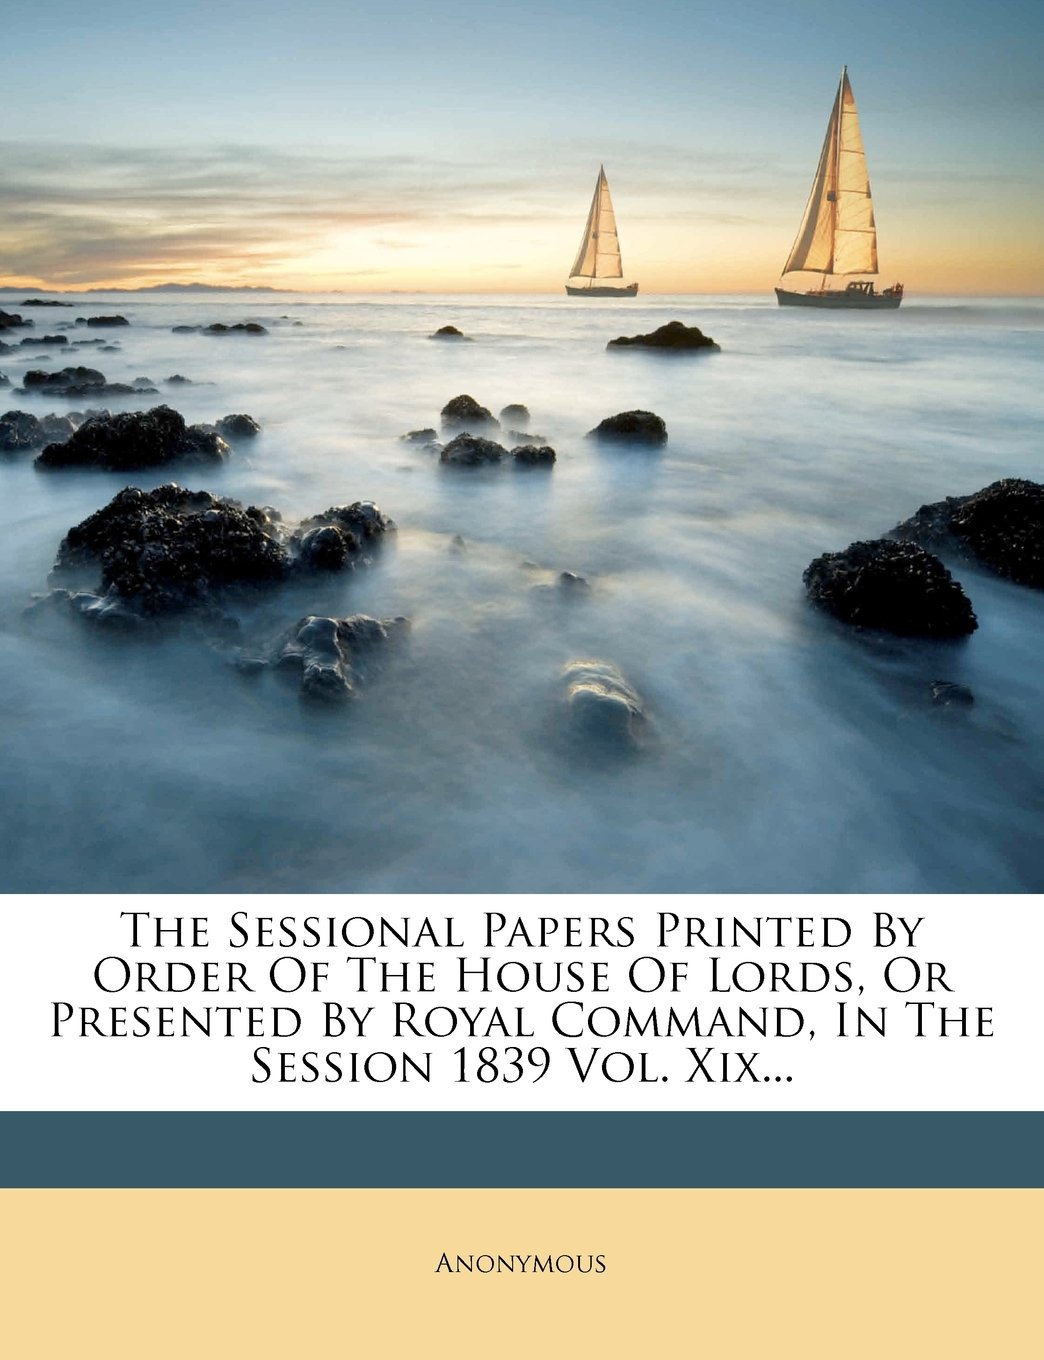 Download The Sessional Papers Printed By Order Of The House Of Lords, Or Presented By Royal Command, In The Session 1839 Vol. Xix... PDF